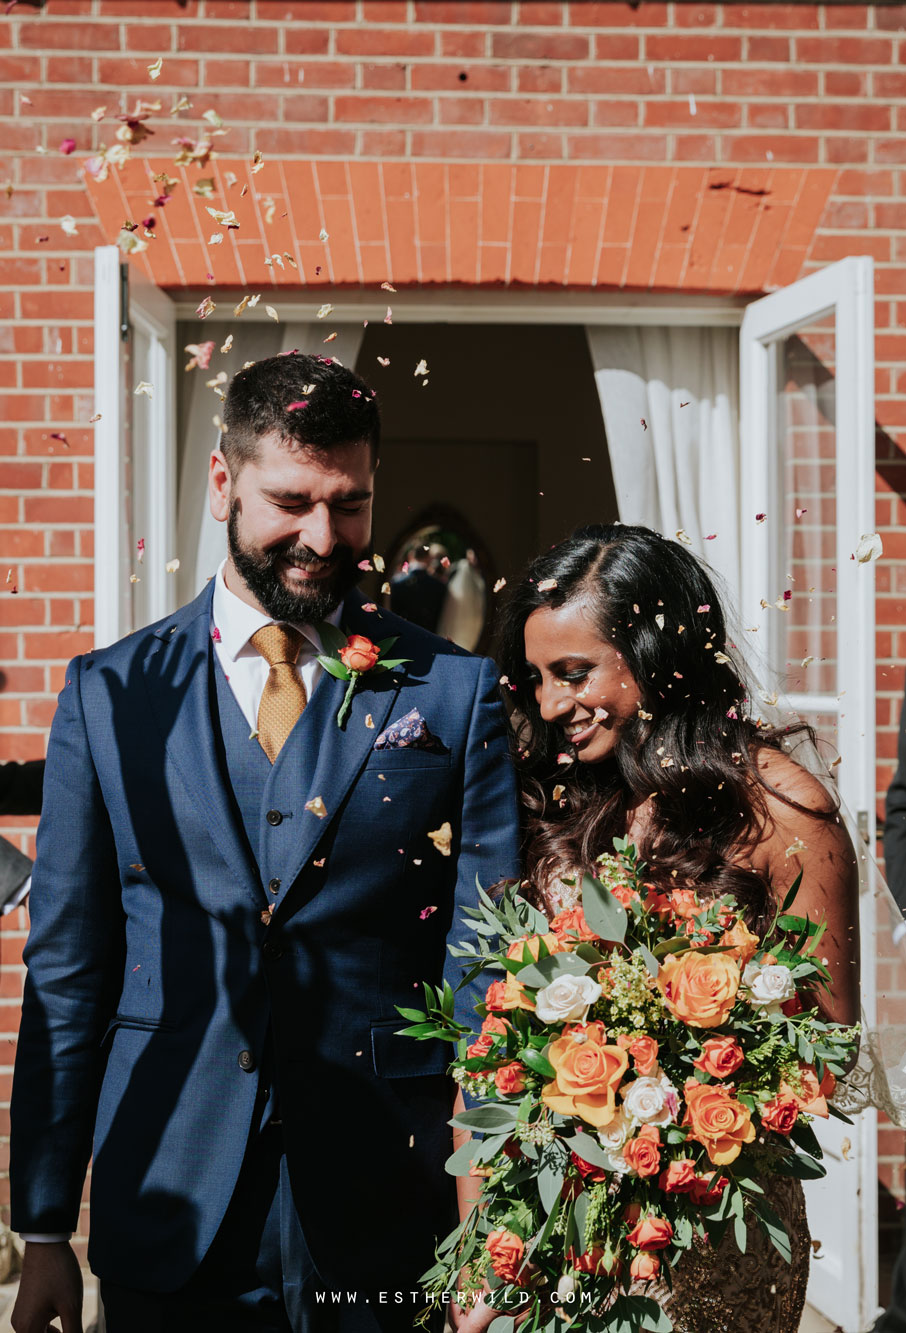 Twickenham_Registry_Office_London_Wedding_Ceremony_Esther_Wild_Photographer_IMG_0586.jpg